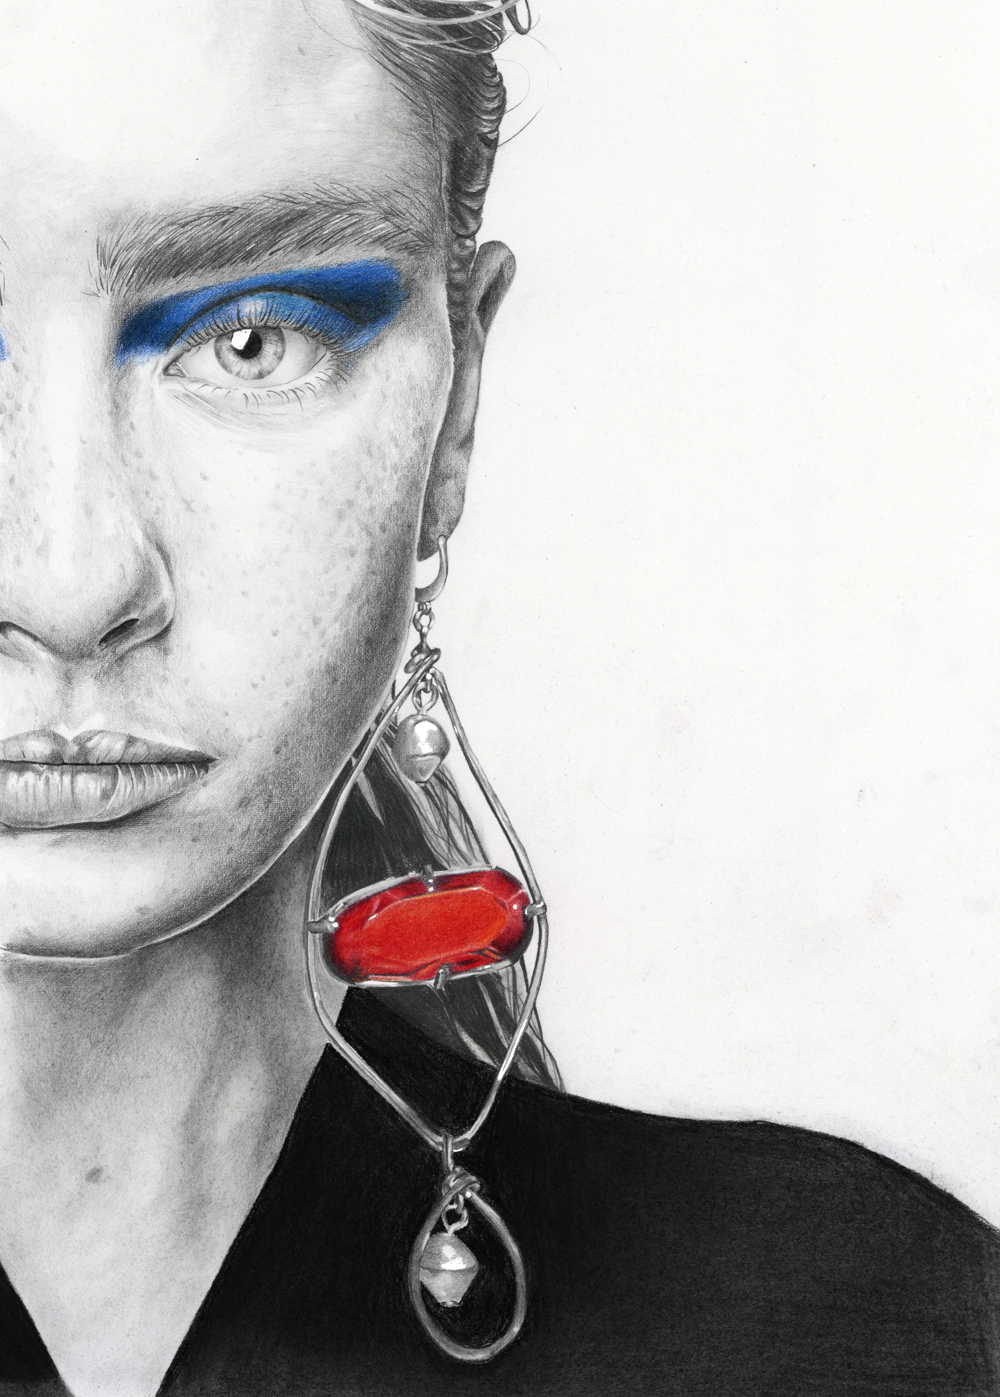 """Alisha Nesvat - Marni Spring 2018"" - Graphite and Colour Pencil Fashion illustration by Alison Sargent"